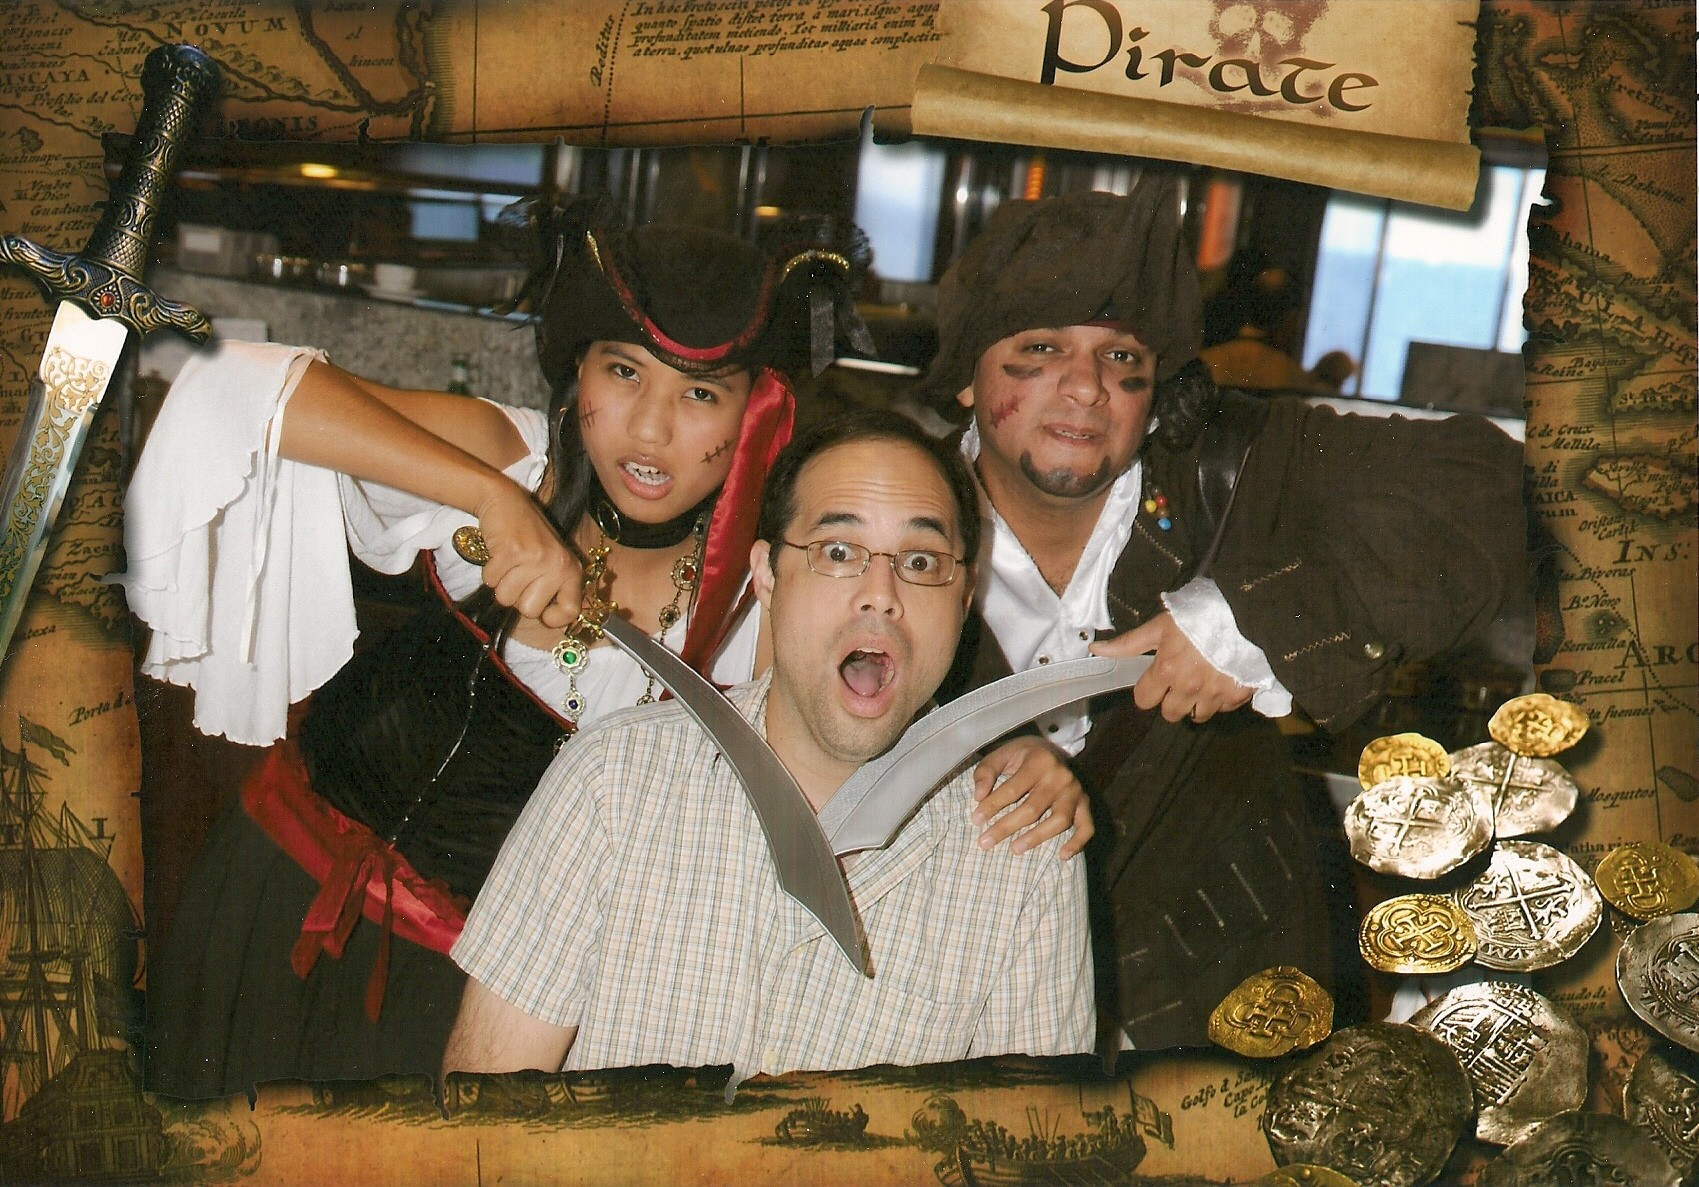 Me & The Pirates